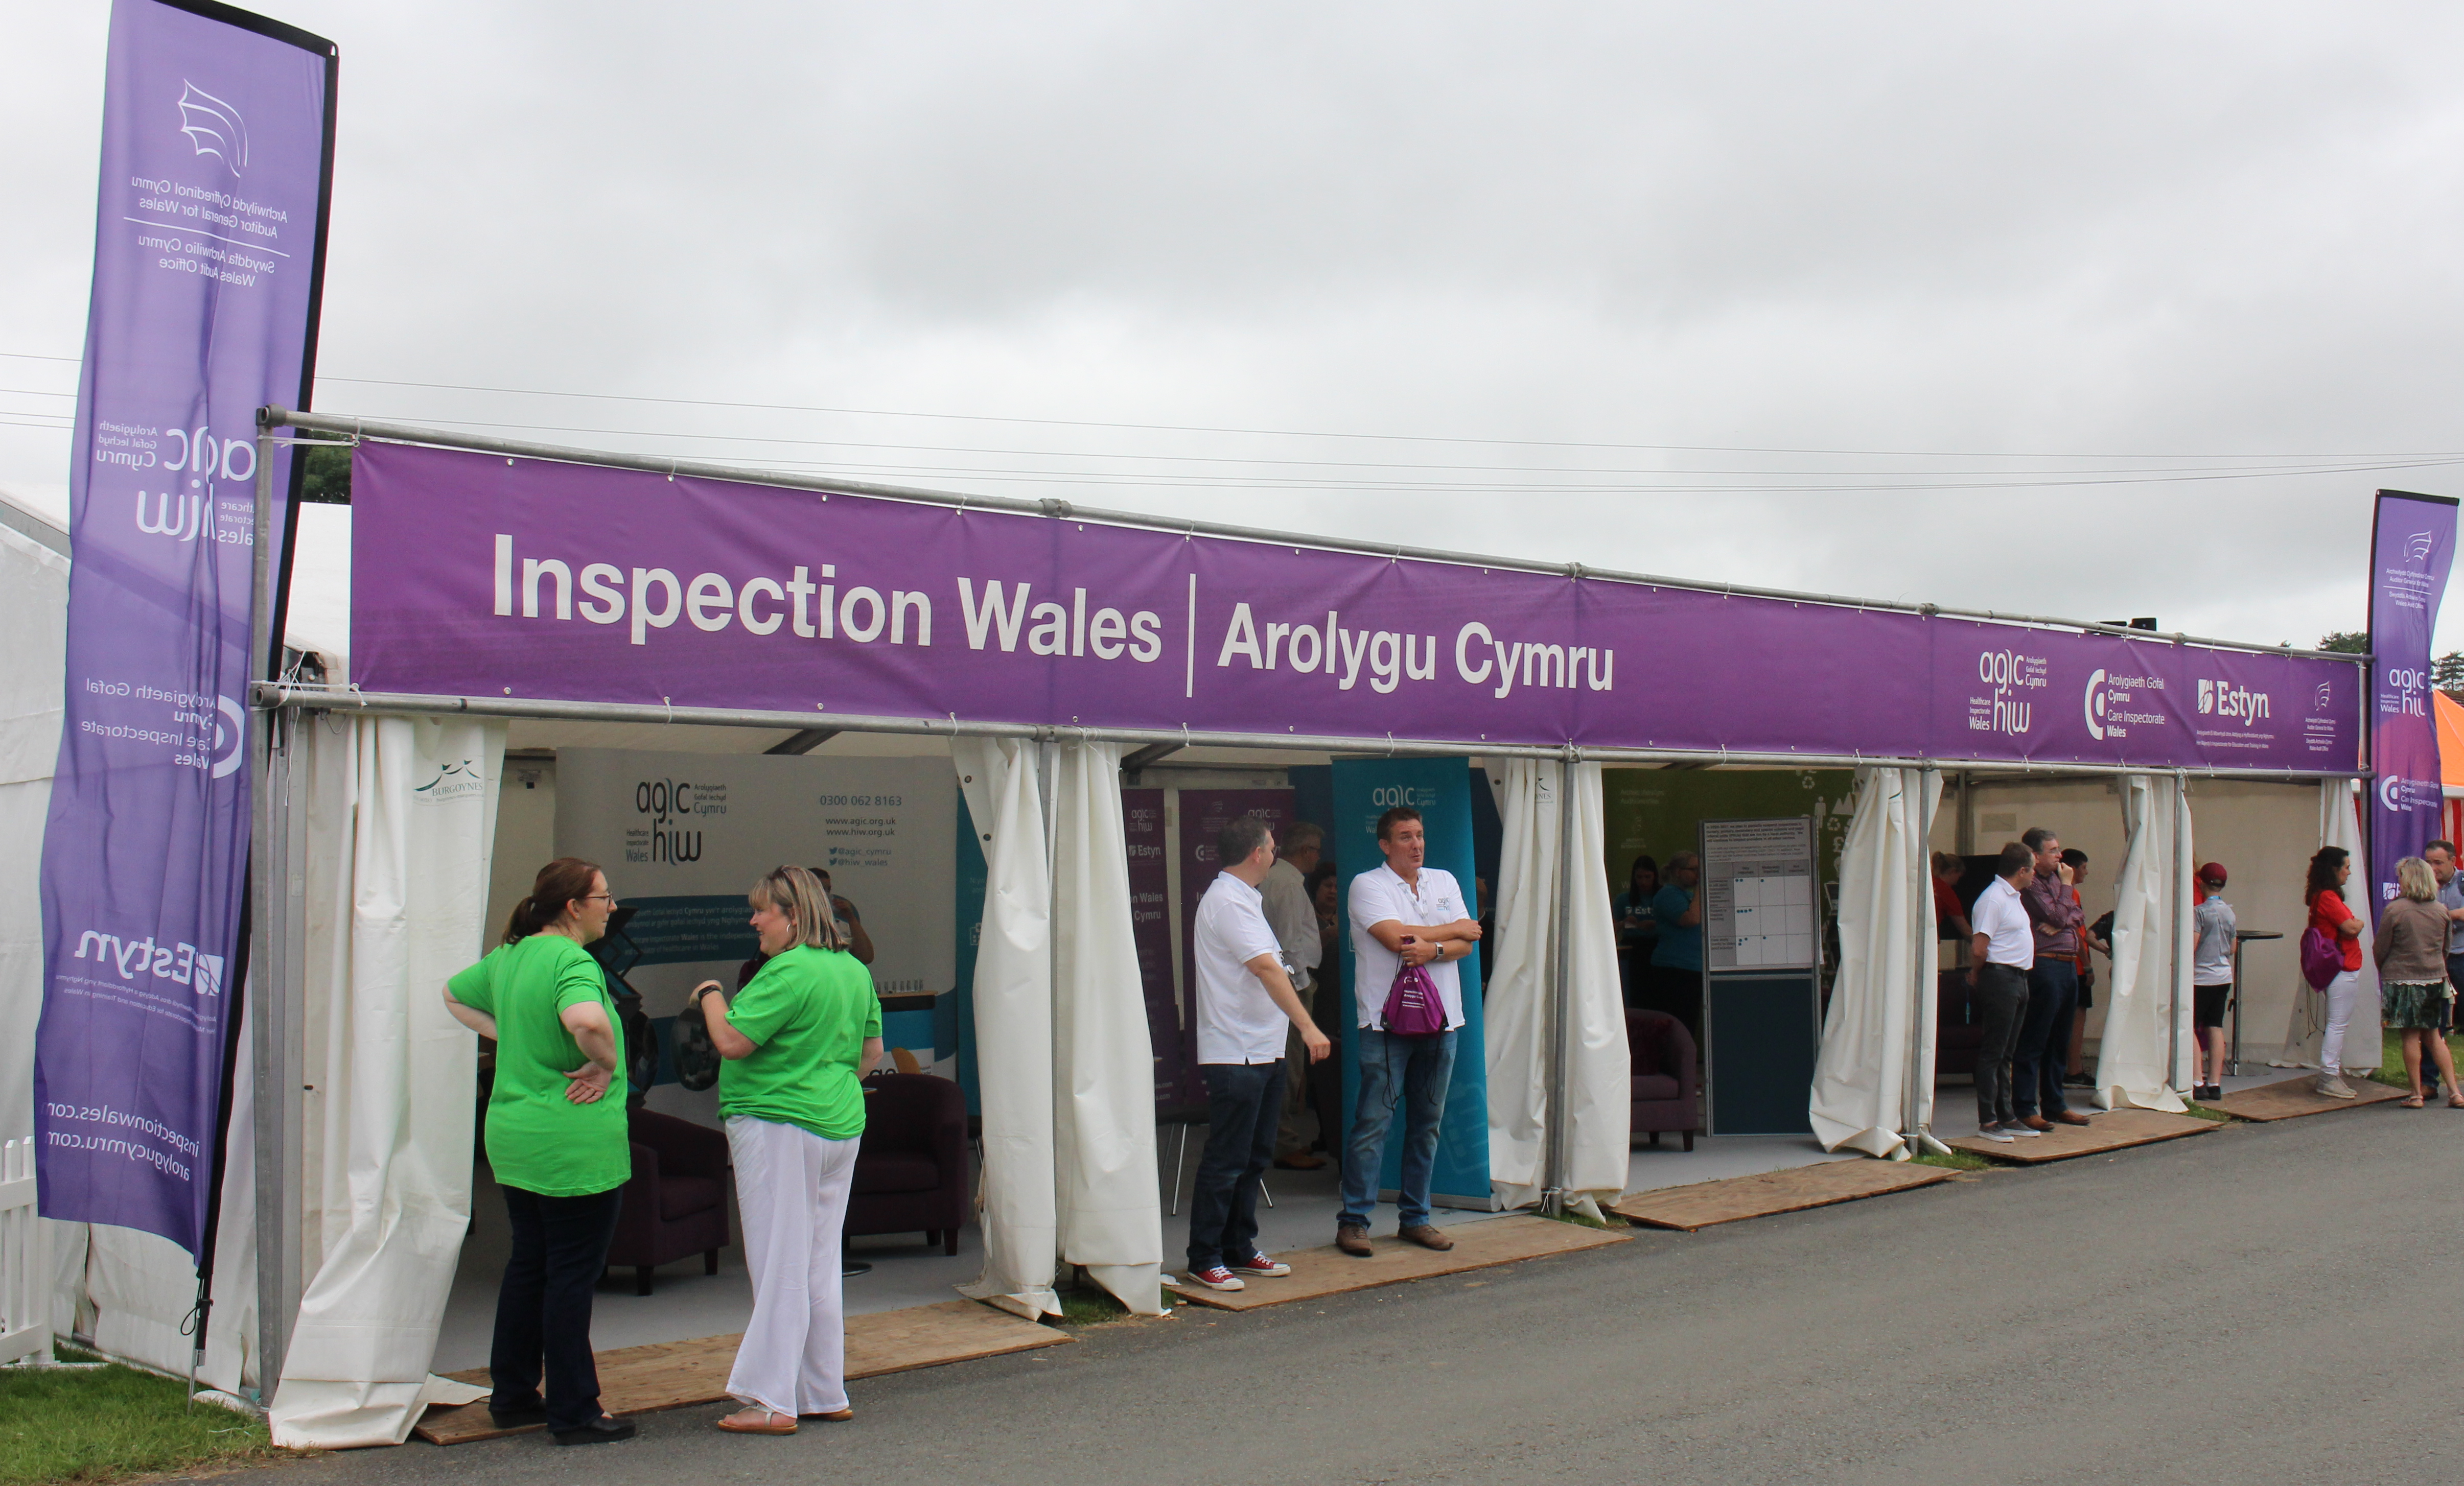 Inspection Wales stand